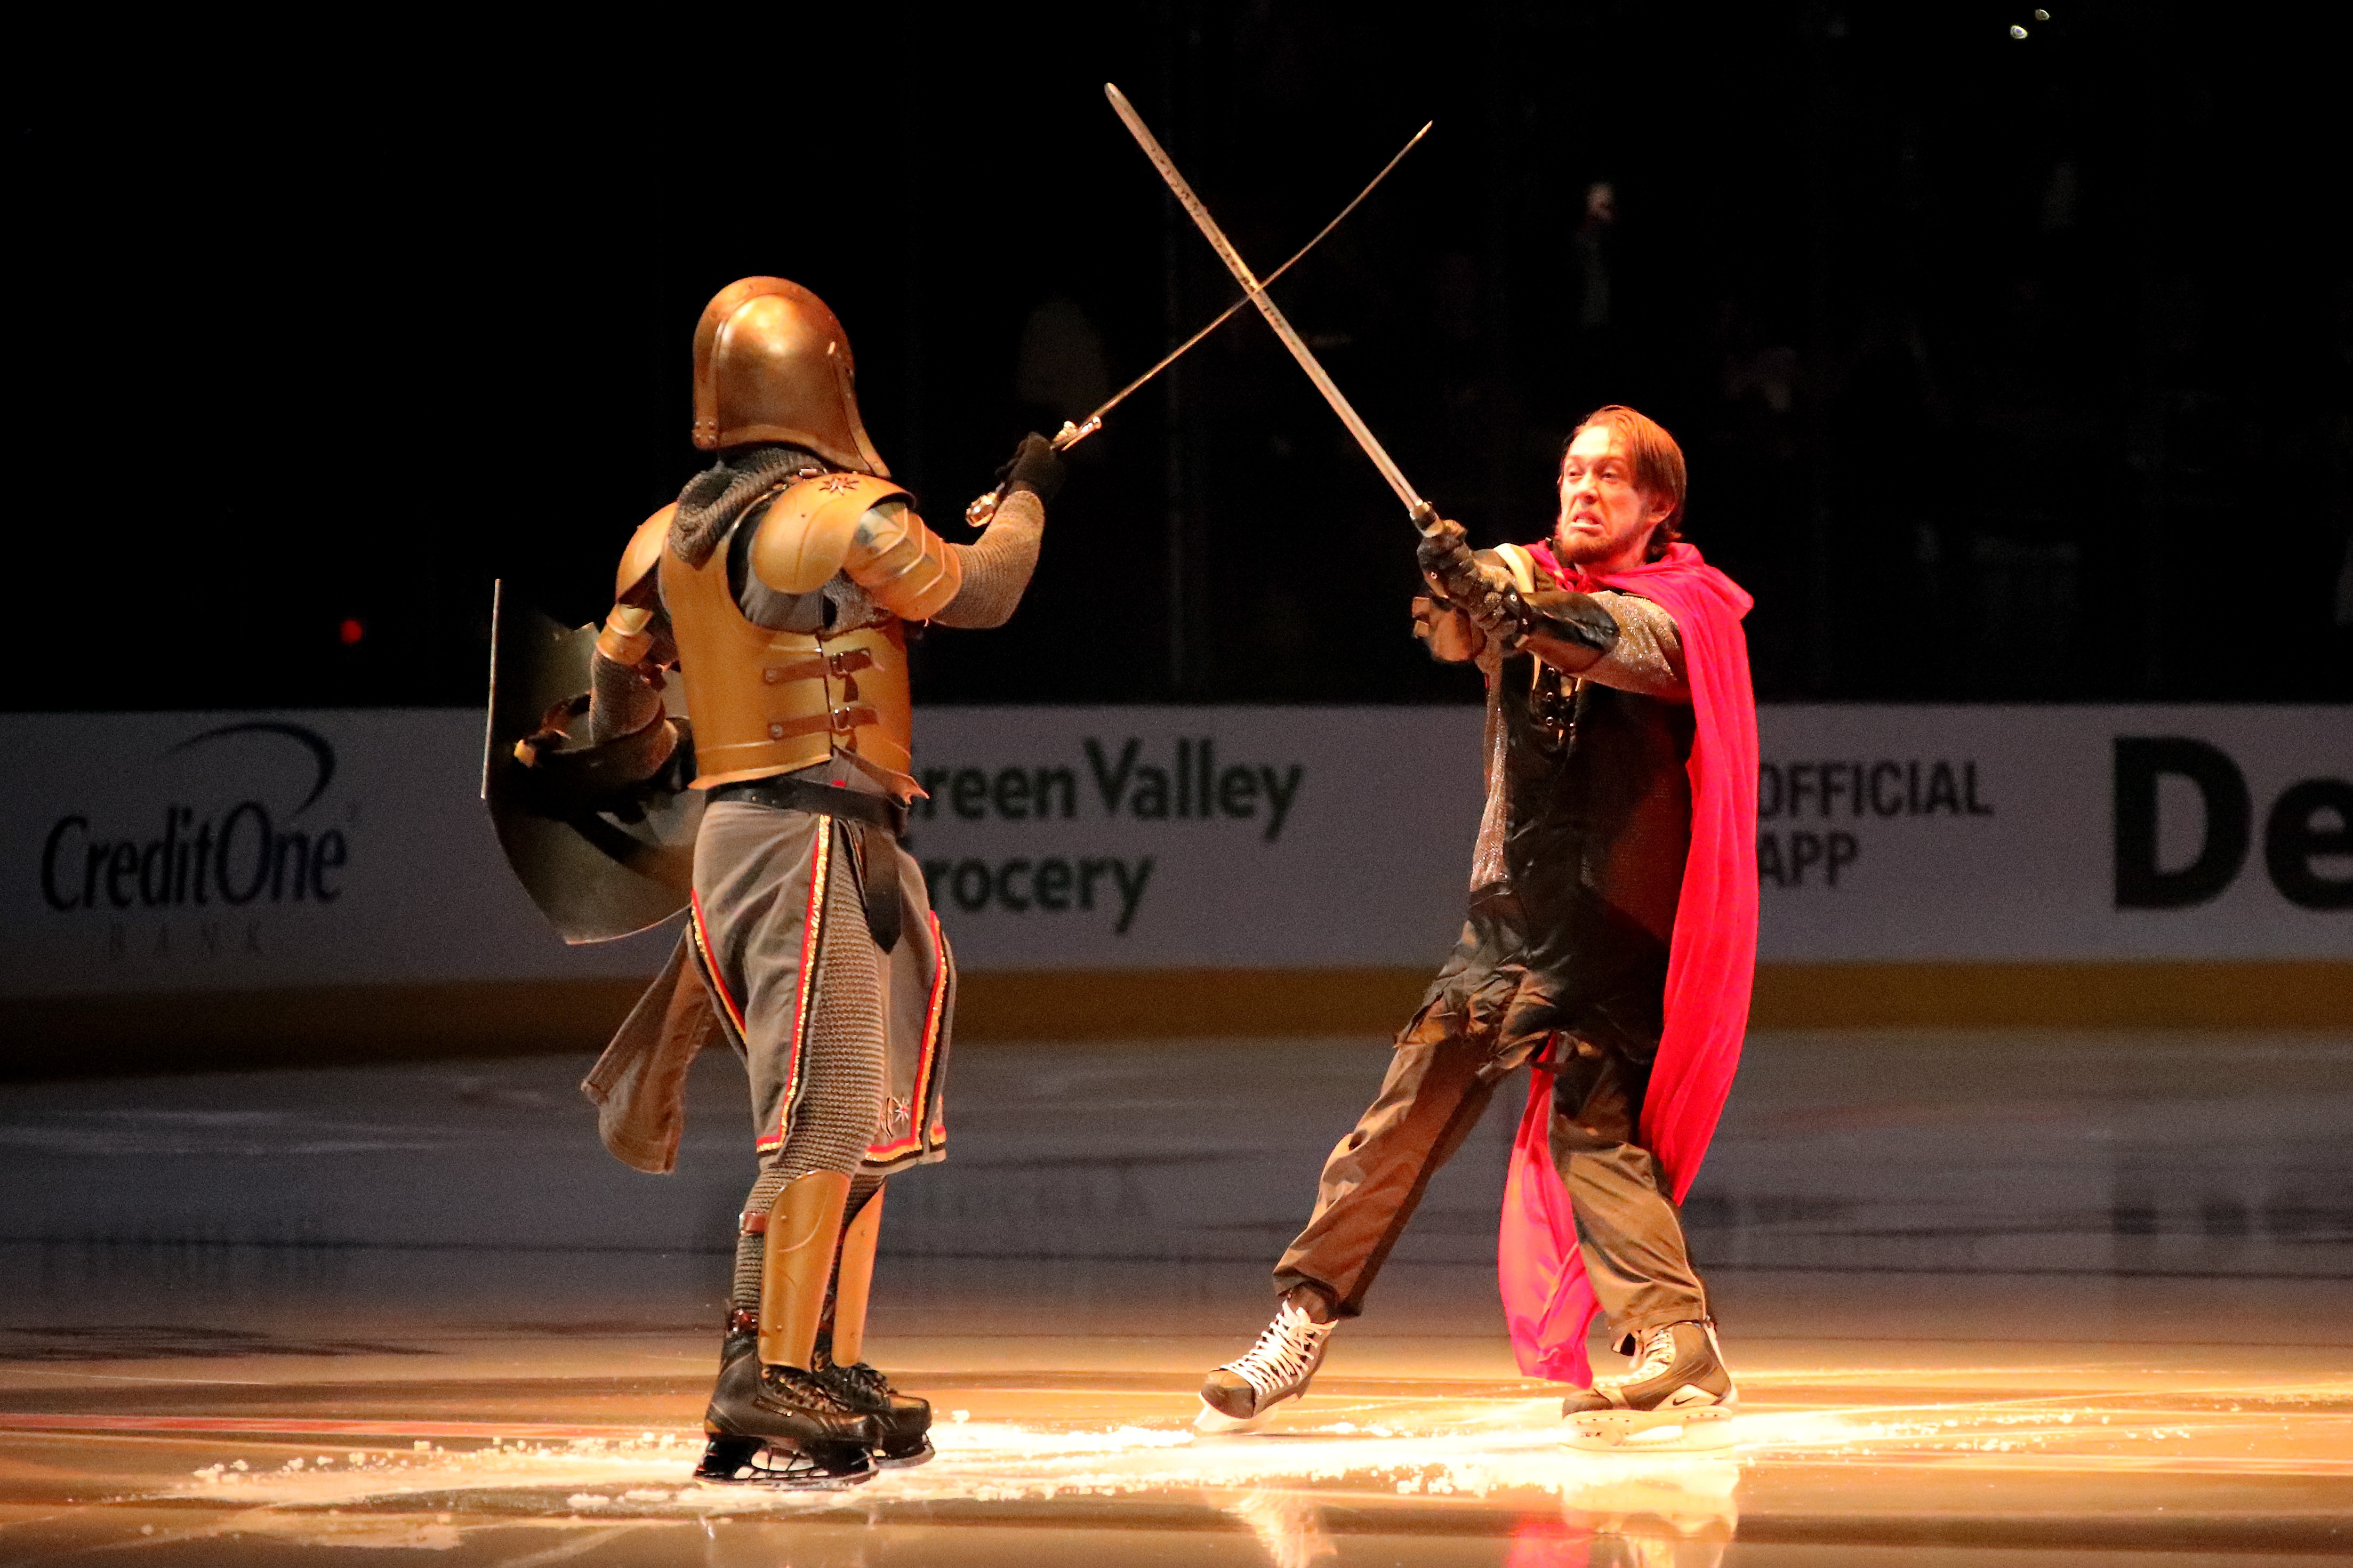 'The Golden Knights' army has grown': In Vegas, a Buffalonian